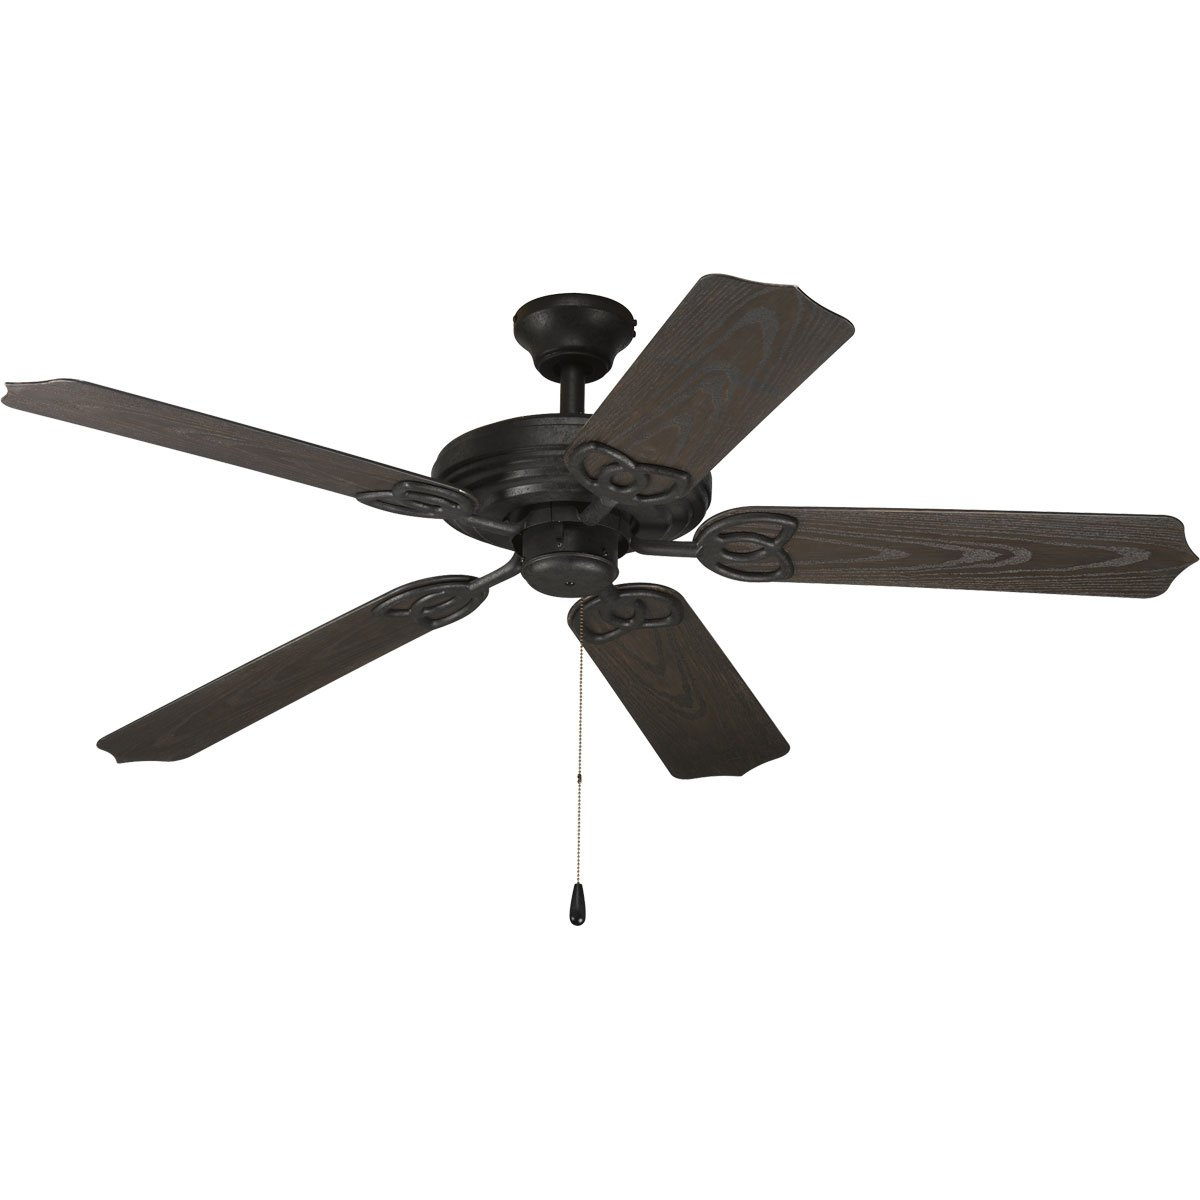 Progress Lighting P2502 80 52 Inch Indoor/Outdoor 5 Blade Fan With Toasted  Oak Blades, Forged Black   Ceiling Fans   Amazon.com